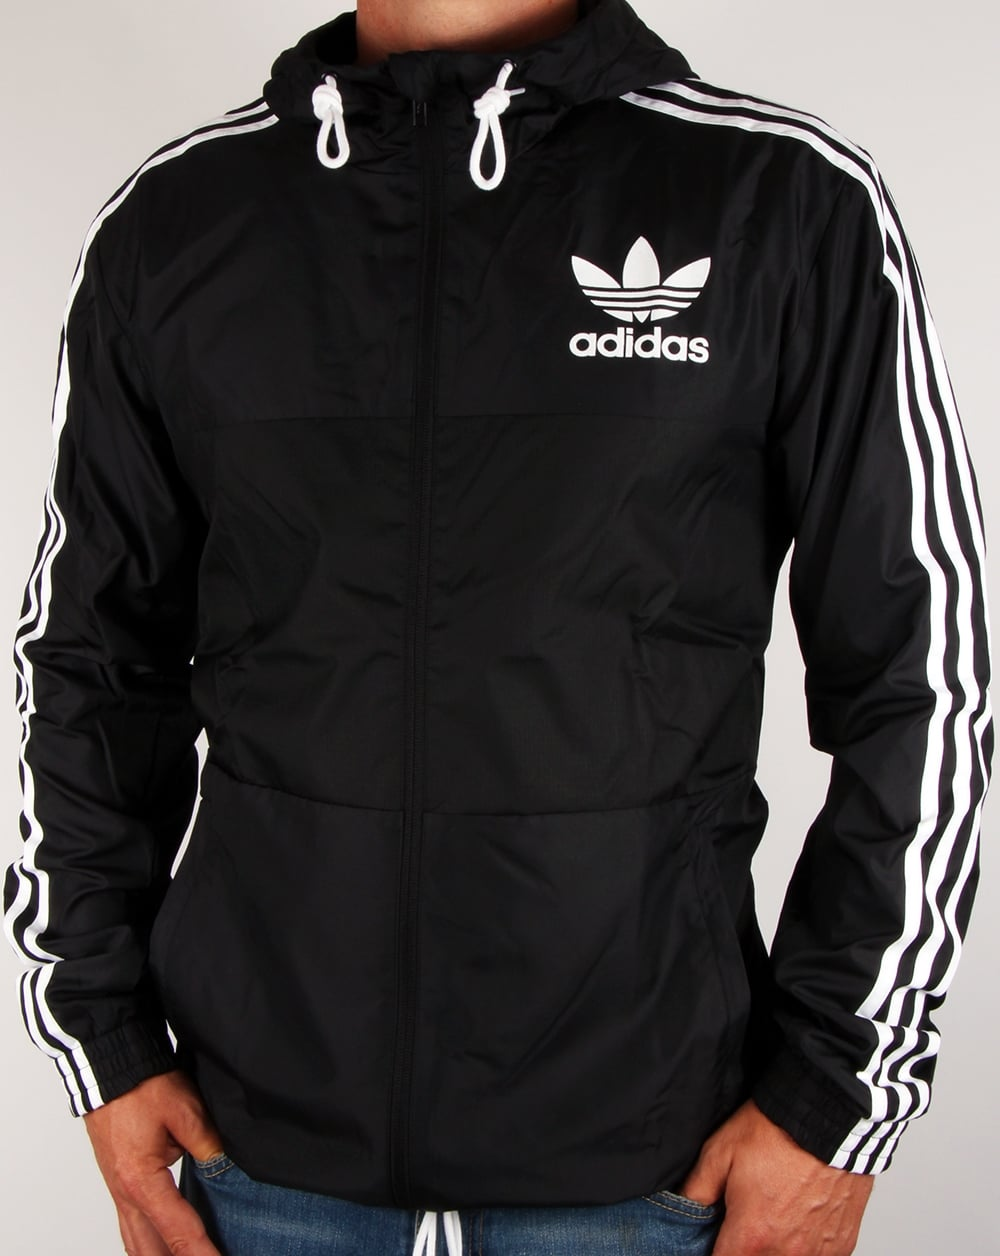 adidas originals california windbreaker black jacket coat mens. Black Bedroom Furniture Sets. Home Design Ideas